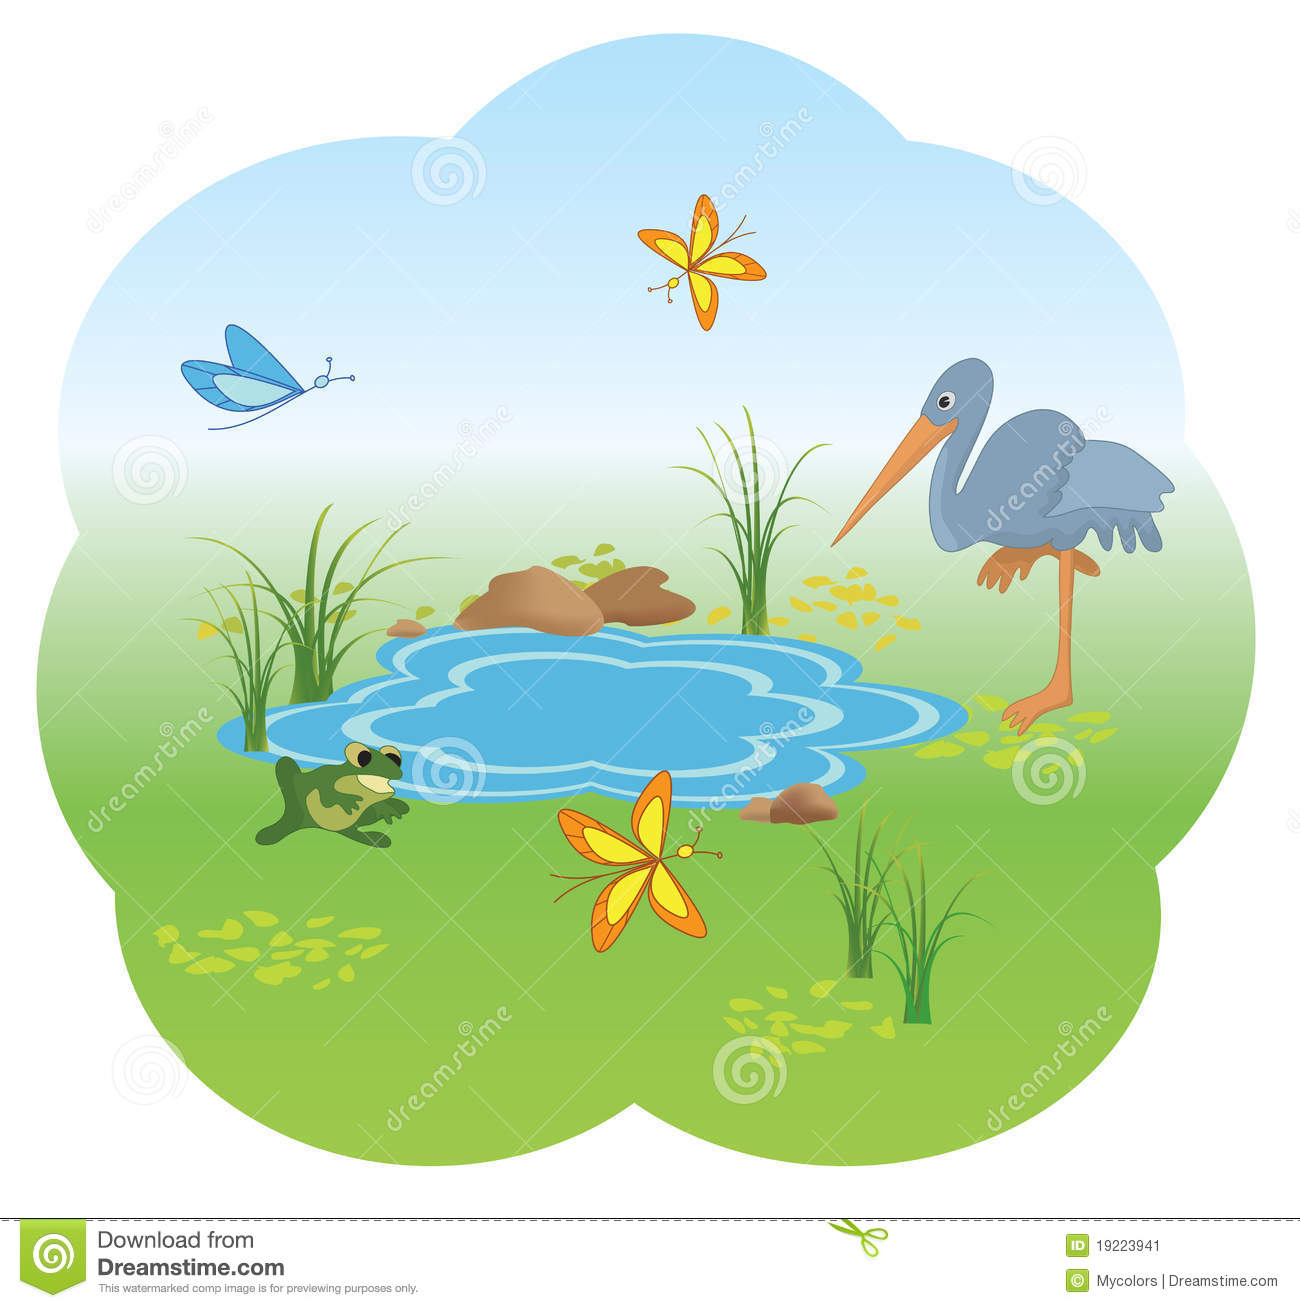 Illustration Of Nature With Blue Lake.